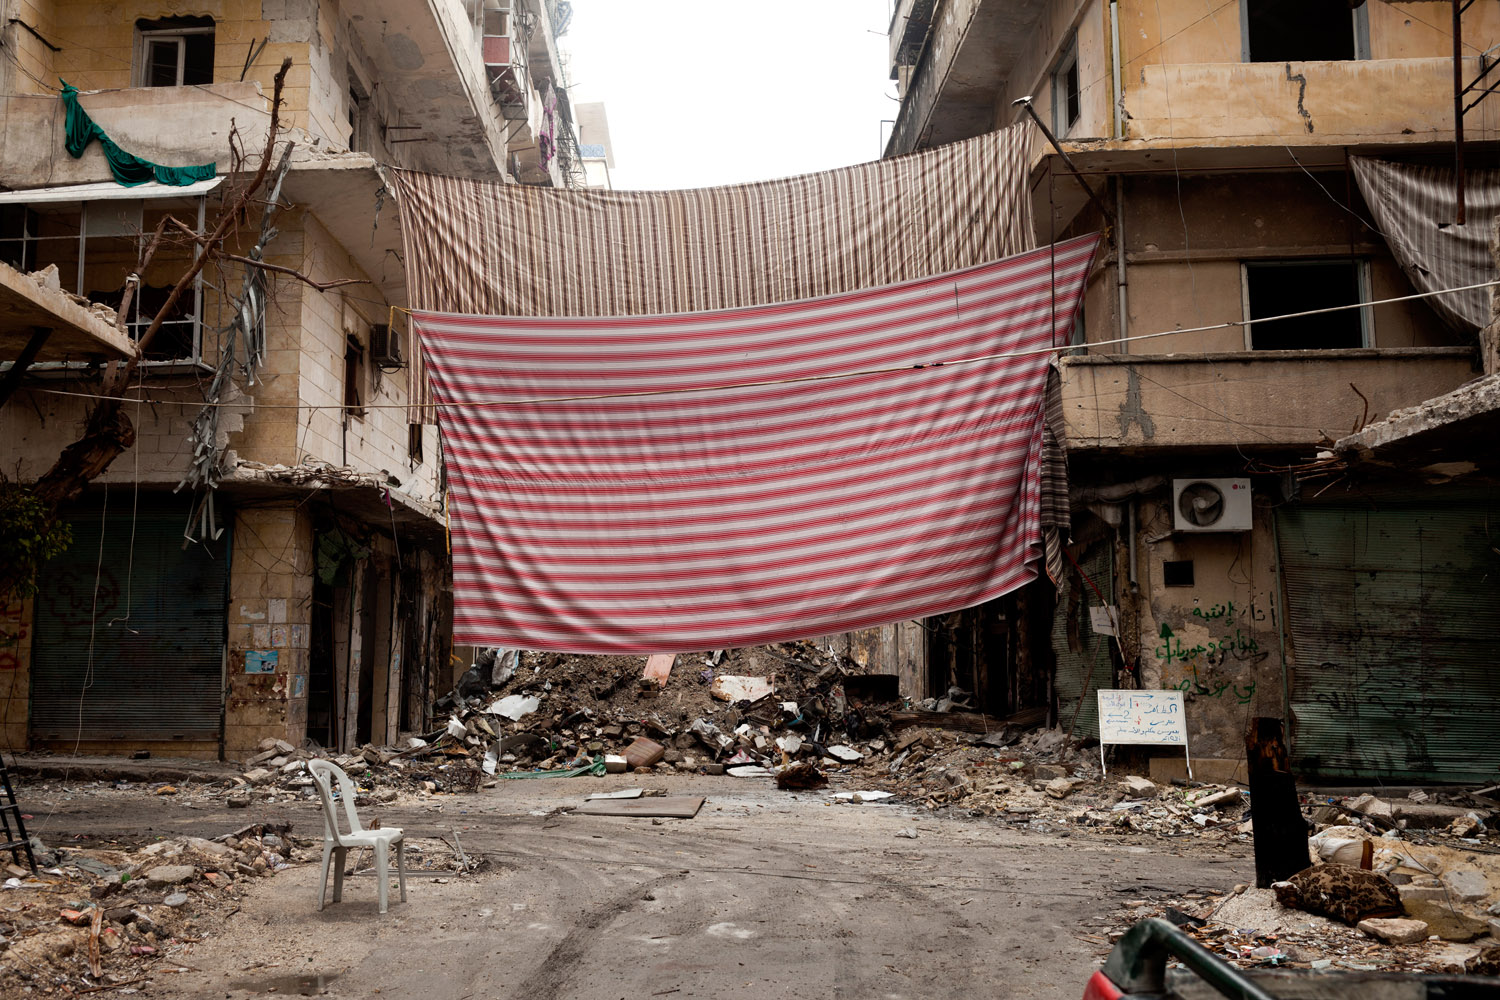 The sheets also highlight the asymmetrical nature of Syria's battlefield. The conflict, now in its third year, pits the army of President Bashar al-Assad against a hodgepodge of disorganized defectors, armed civilians and makeshift militias.